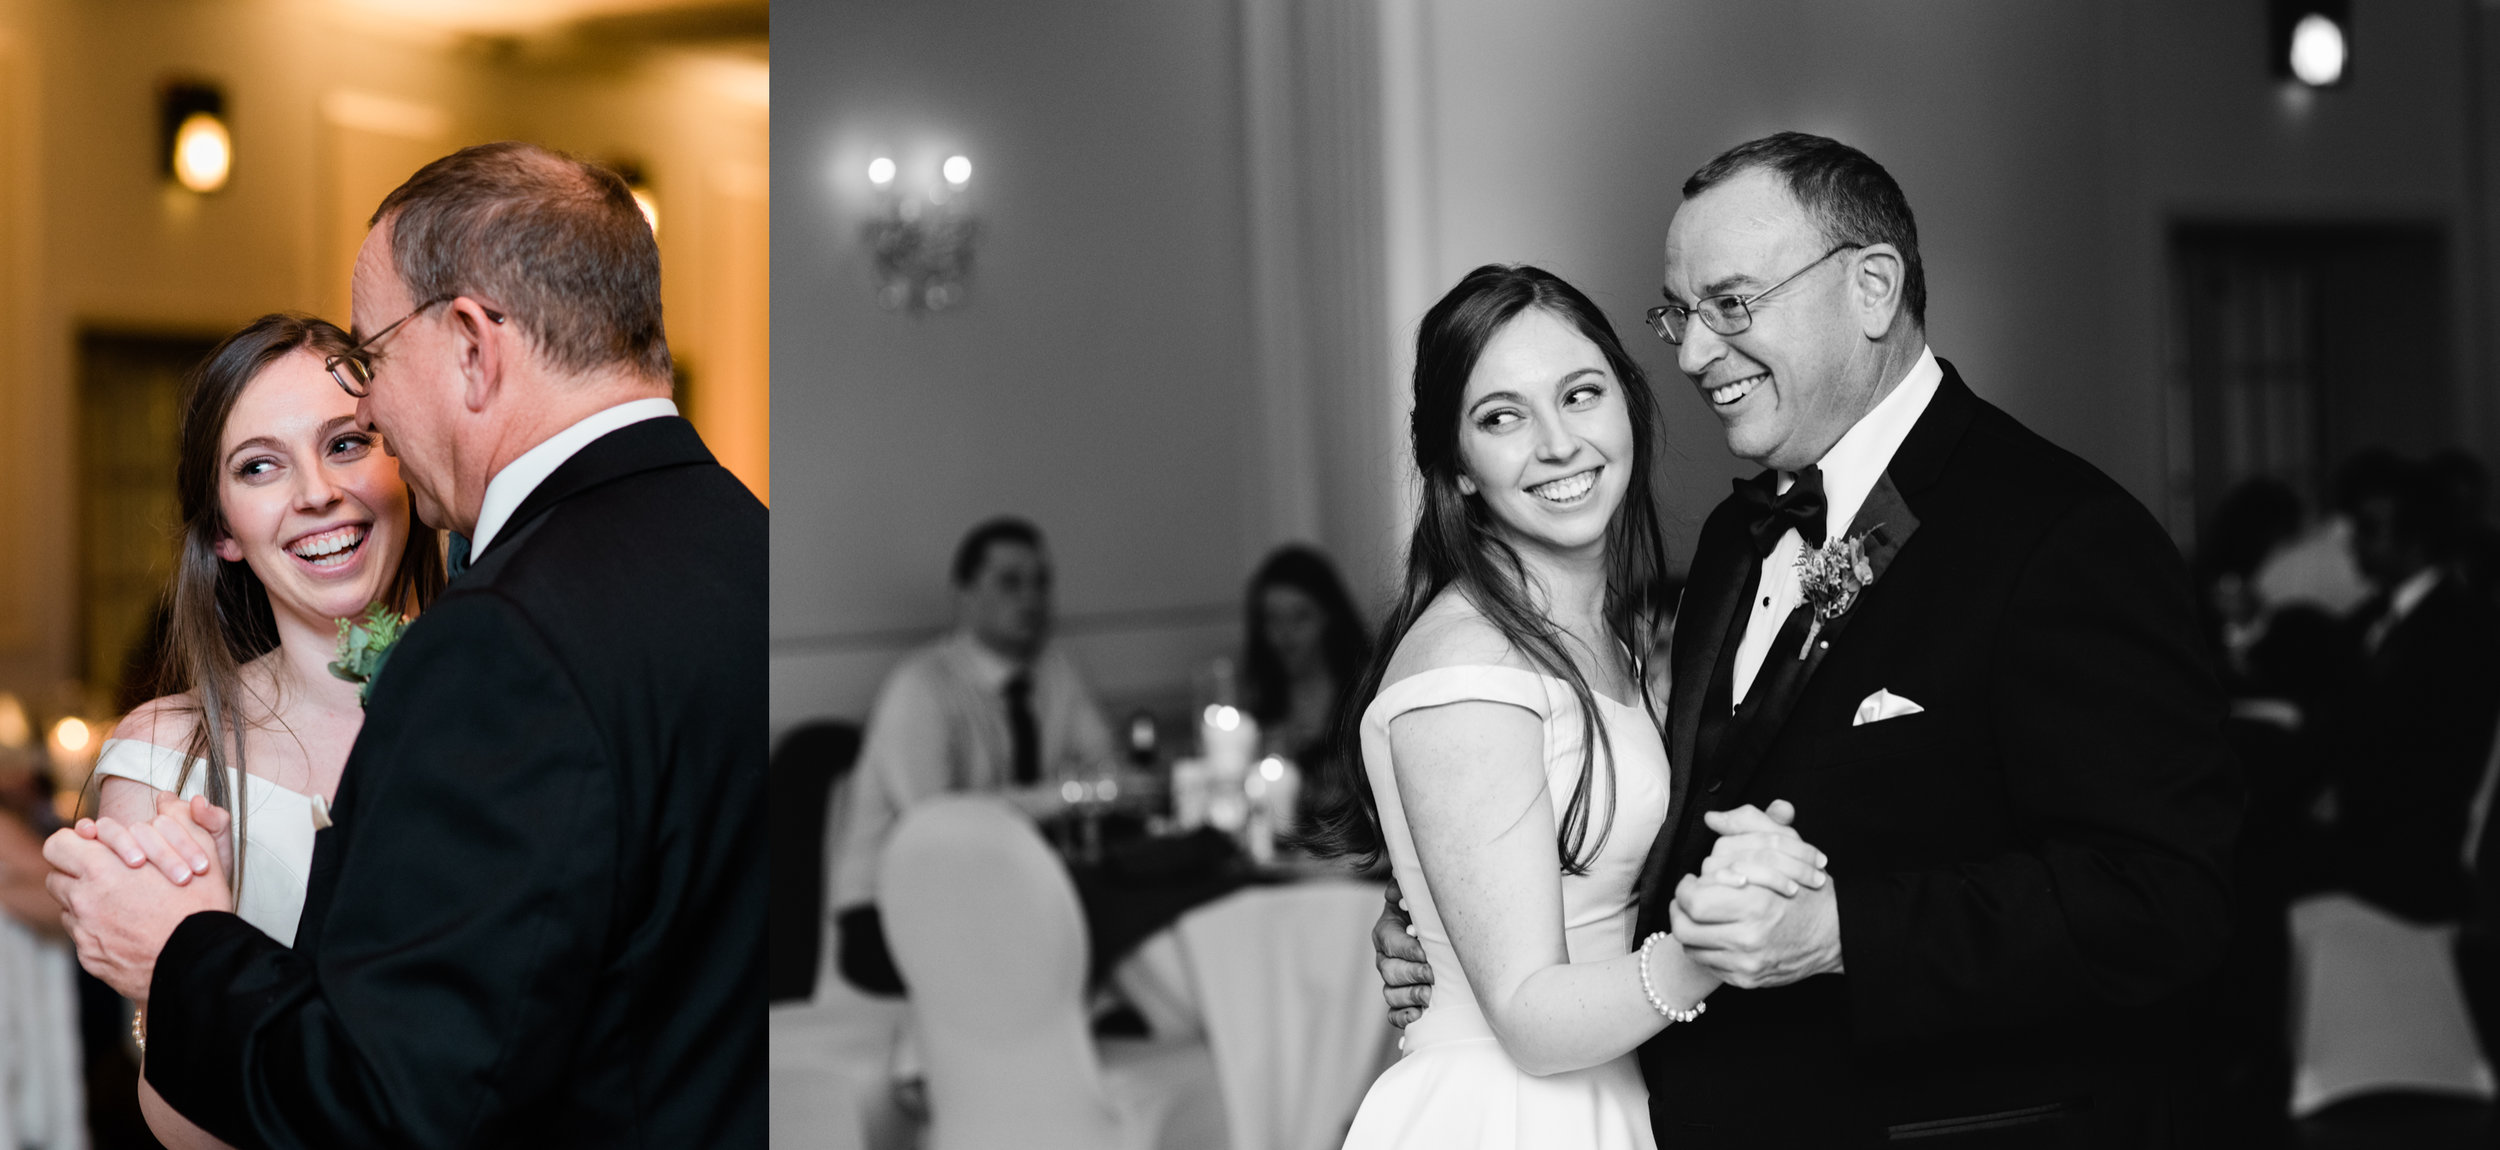 Father Daughter Dance, Mariah Fisher Photography, Johnstown wedding photographer.jpg